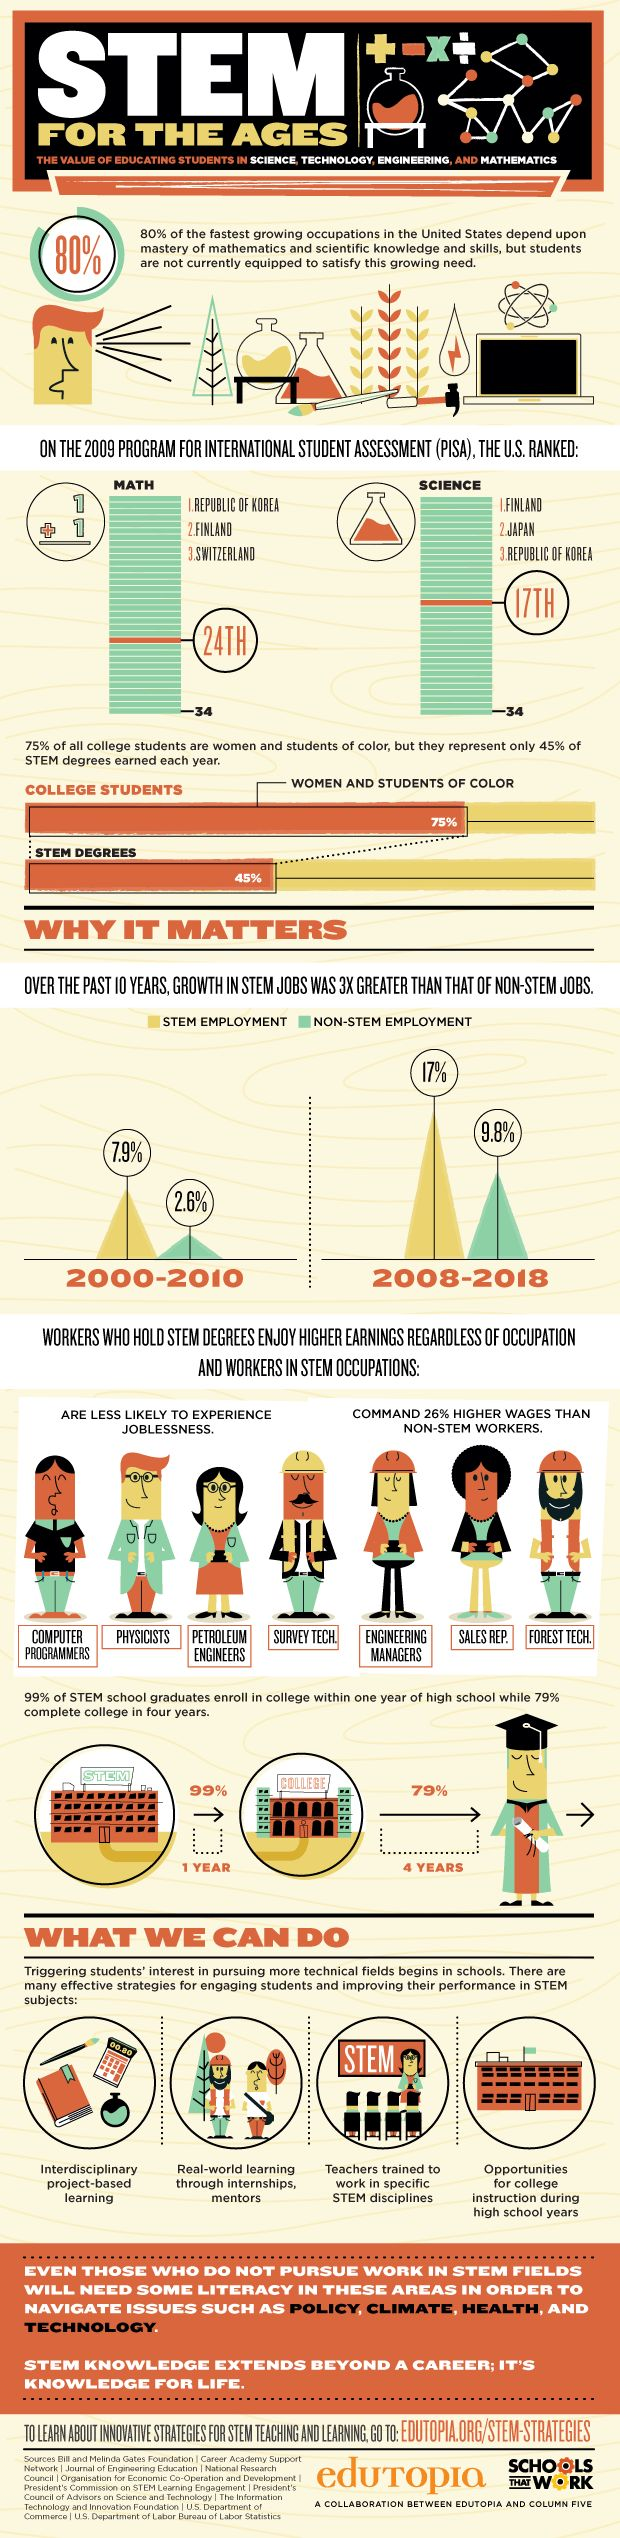 STEM for the ages #infographic